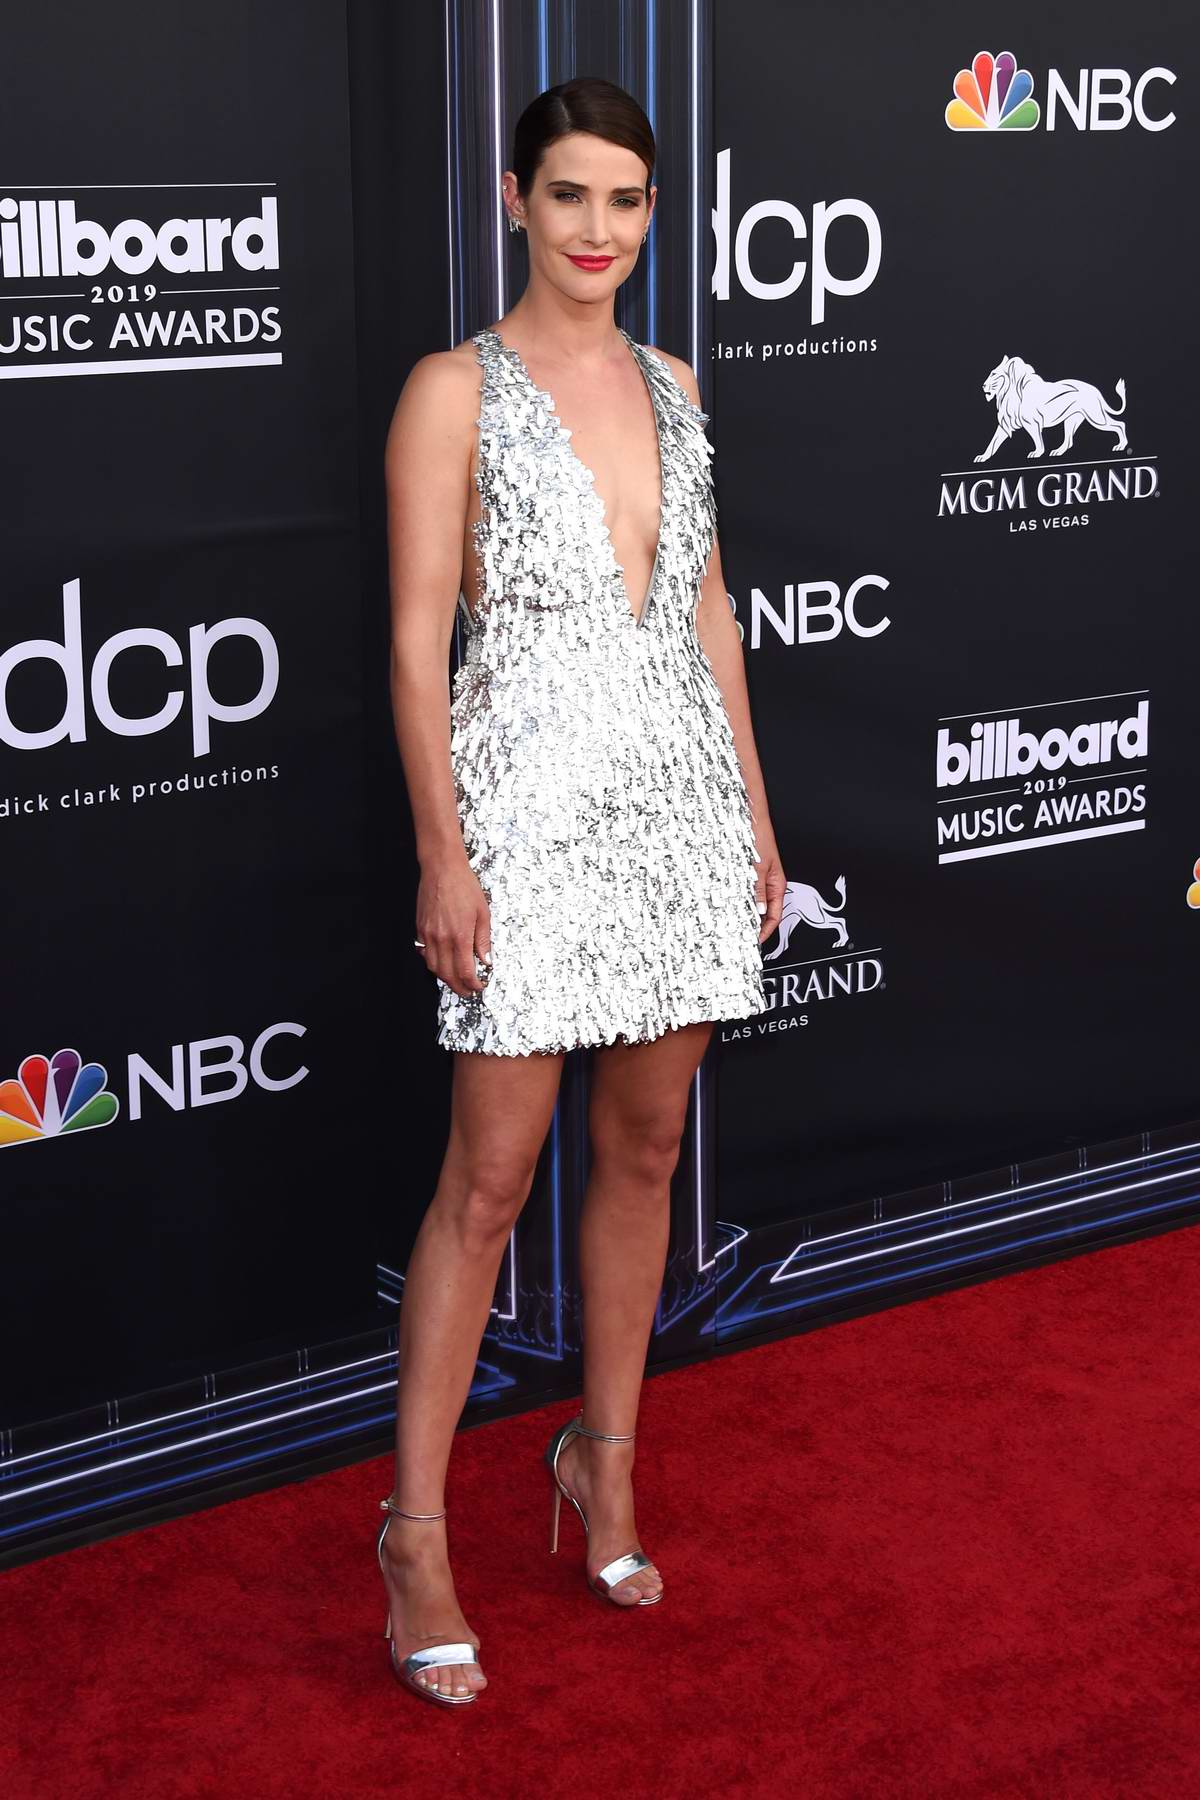 Cobie Smulders attends the 2019 Billboard Music Awards at MGM Grand Garden Arena in Las Vegas, Nevada